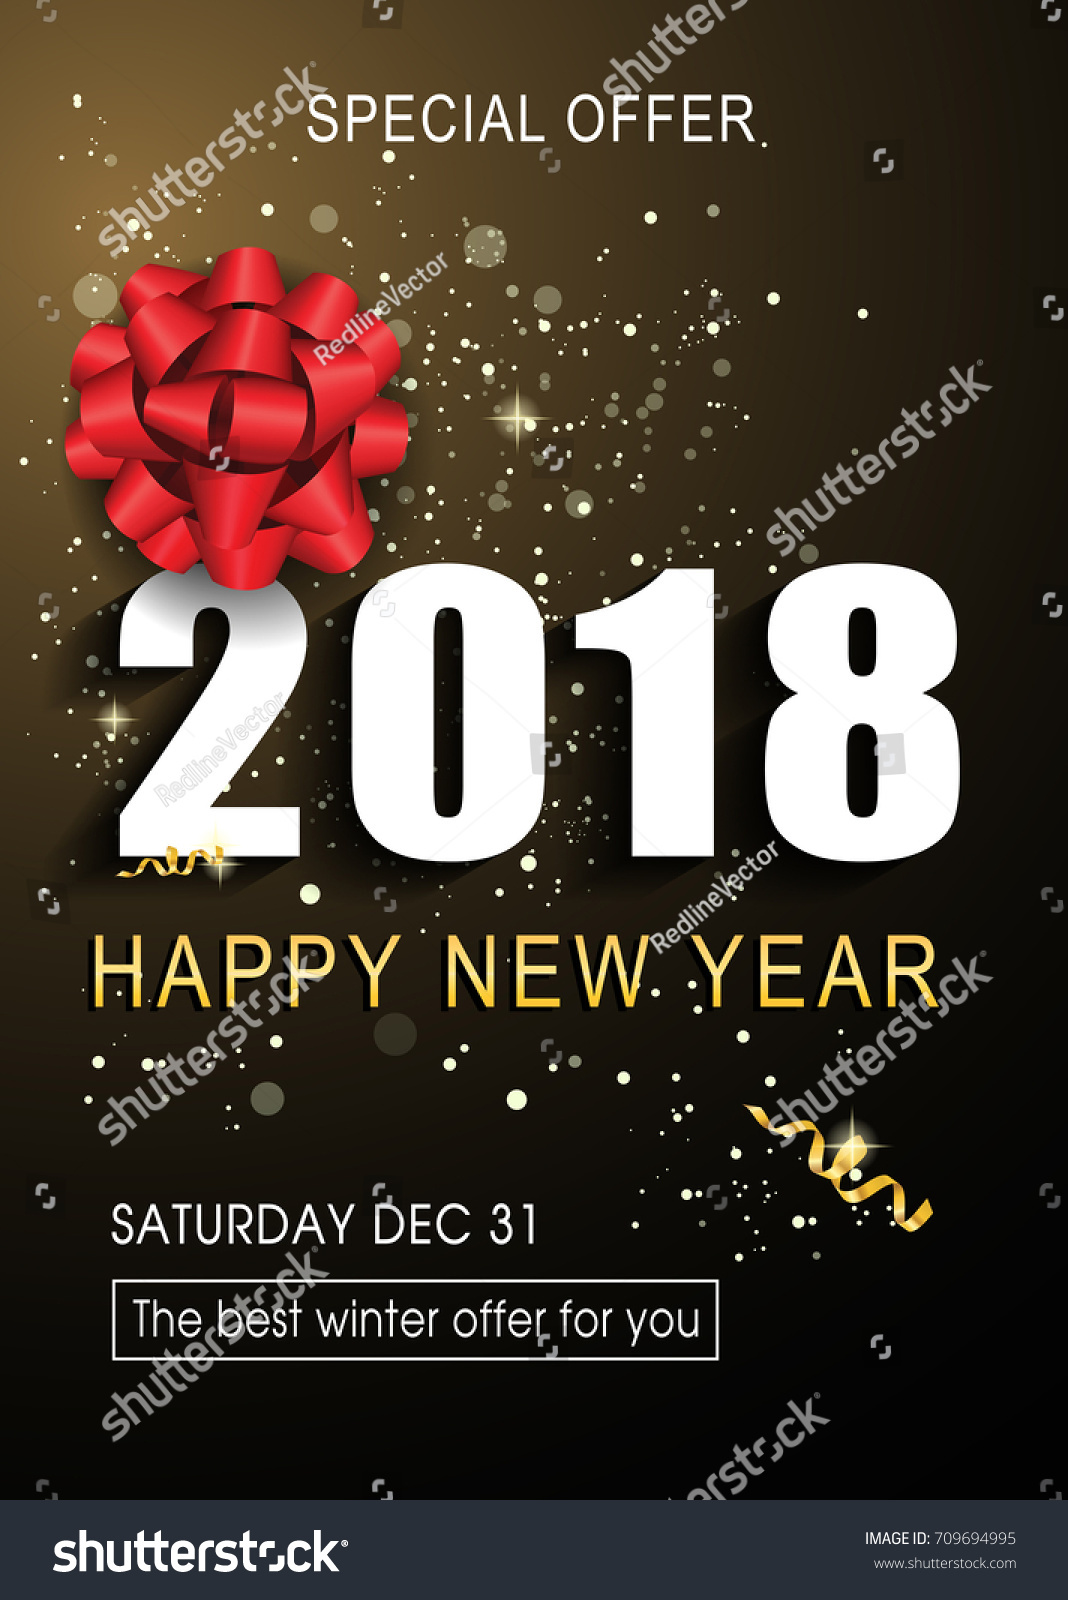 Happy New Year Special Offer Lettering Stock Vector (Royalty Free ...